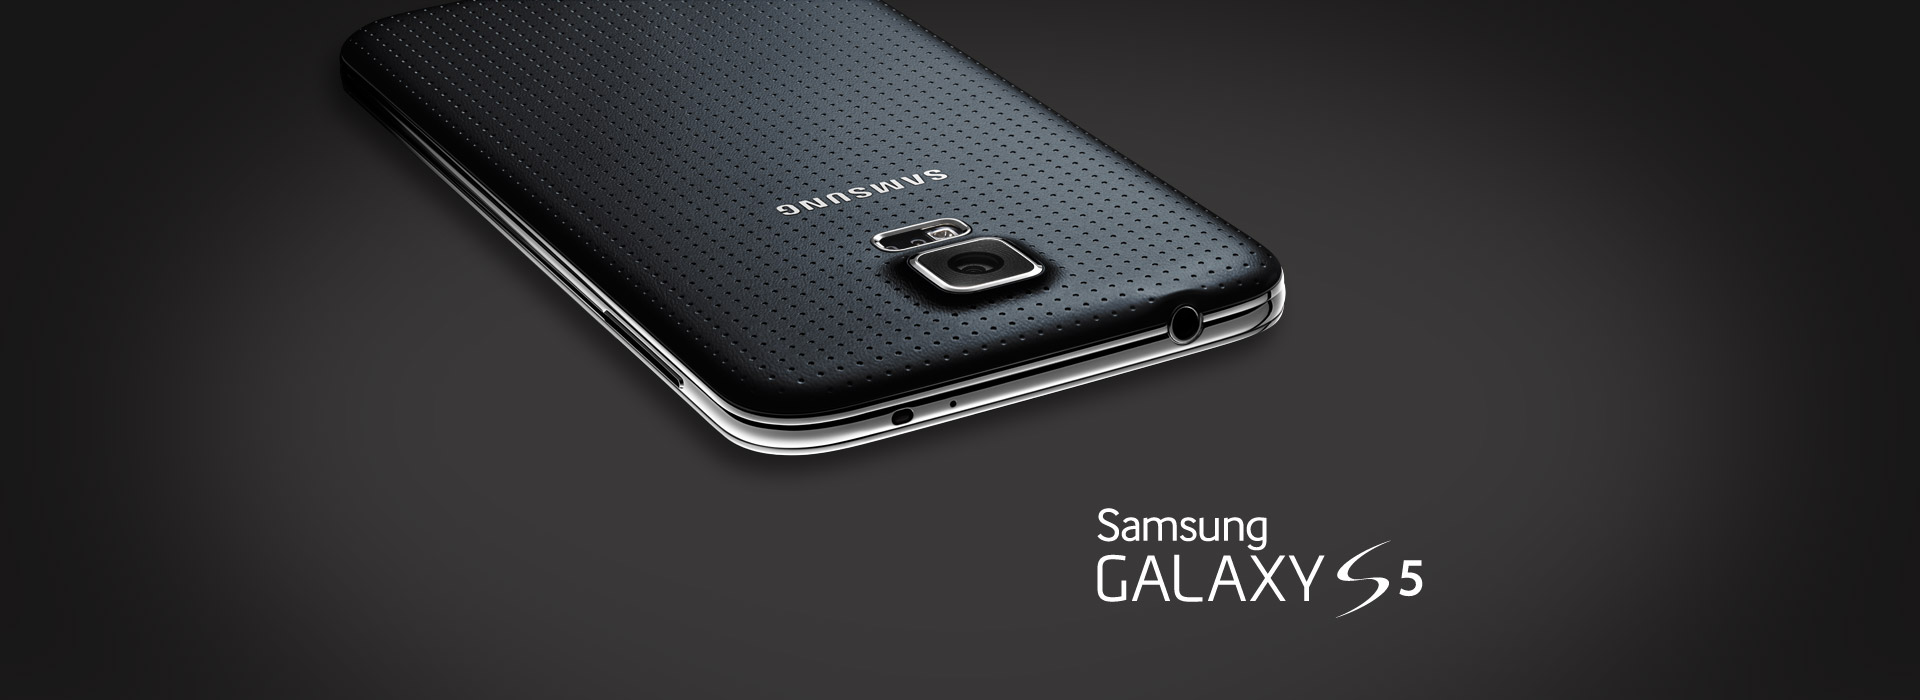 The Samsung Galaxy S5 is here!